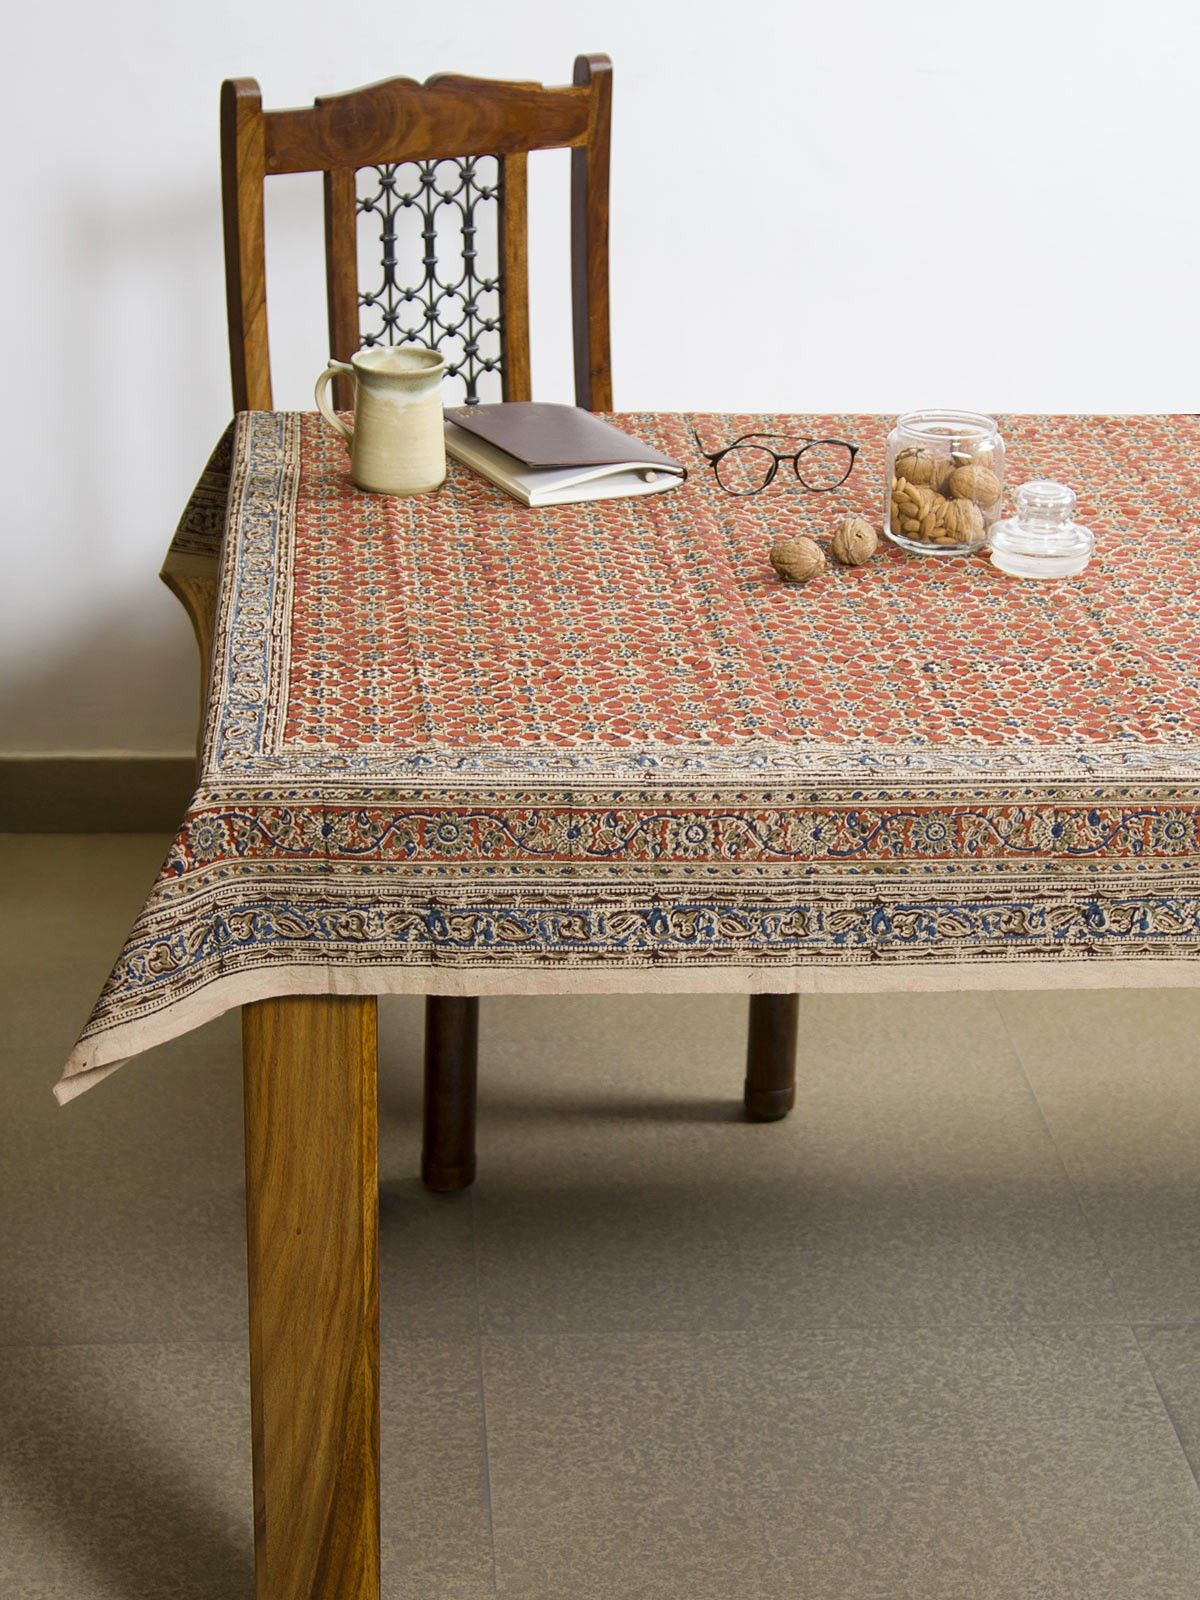 Apple Vayati Kalamkari 4 seater table cover